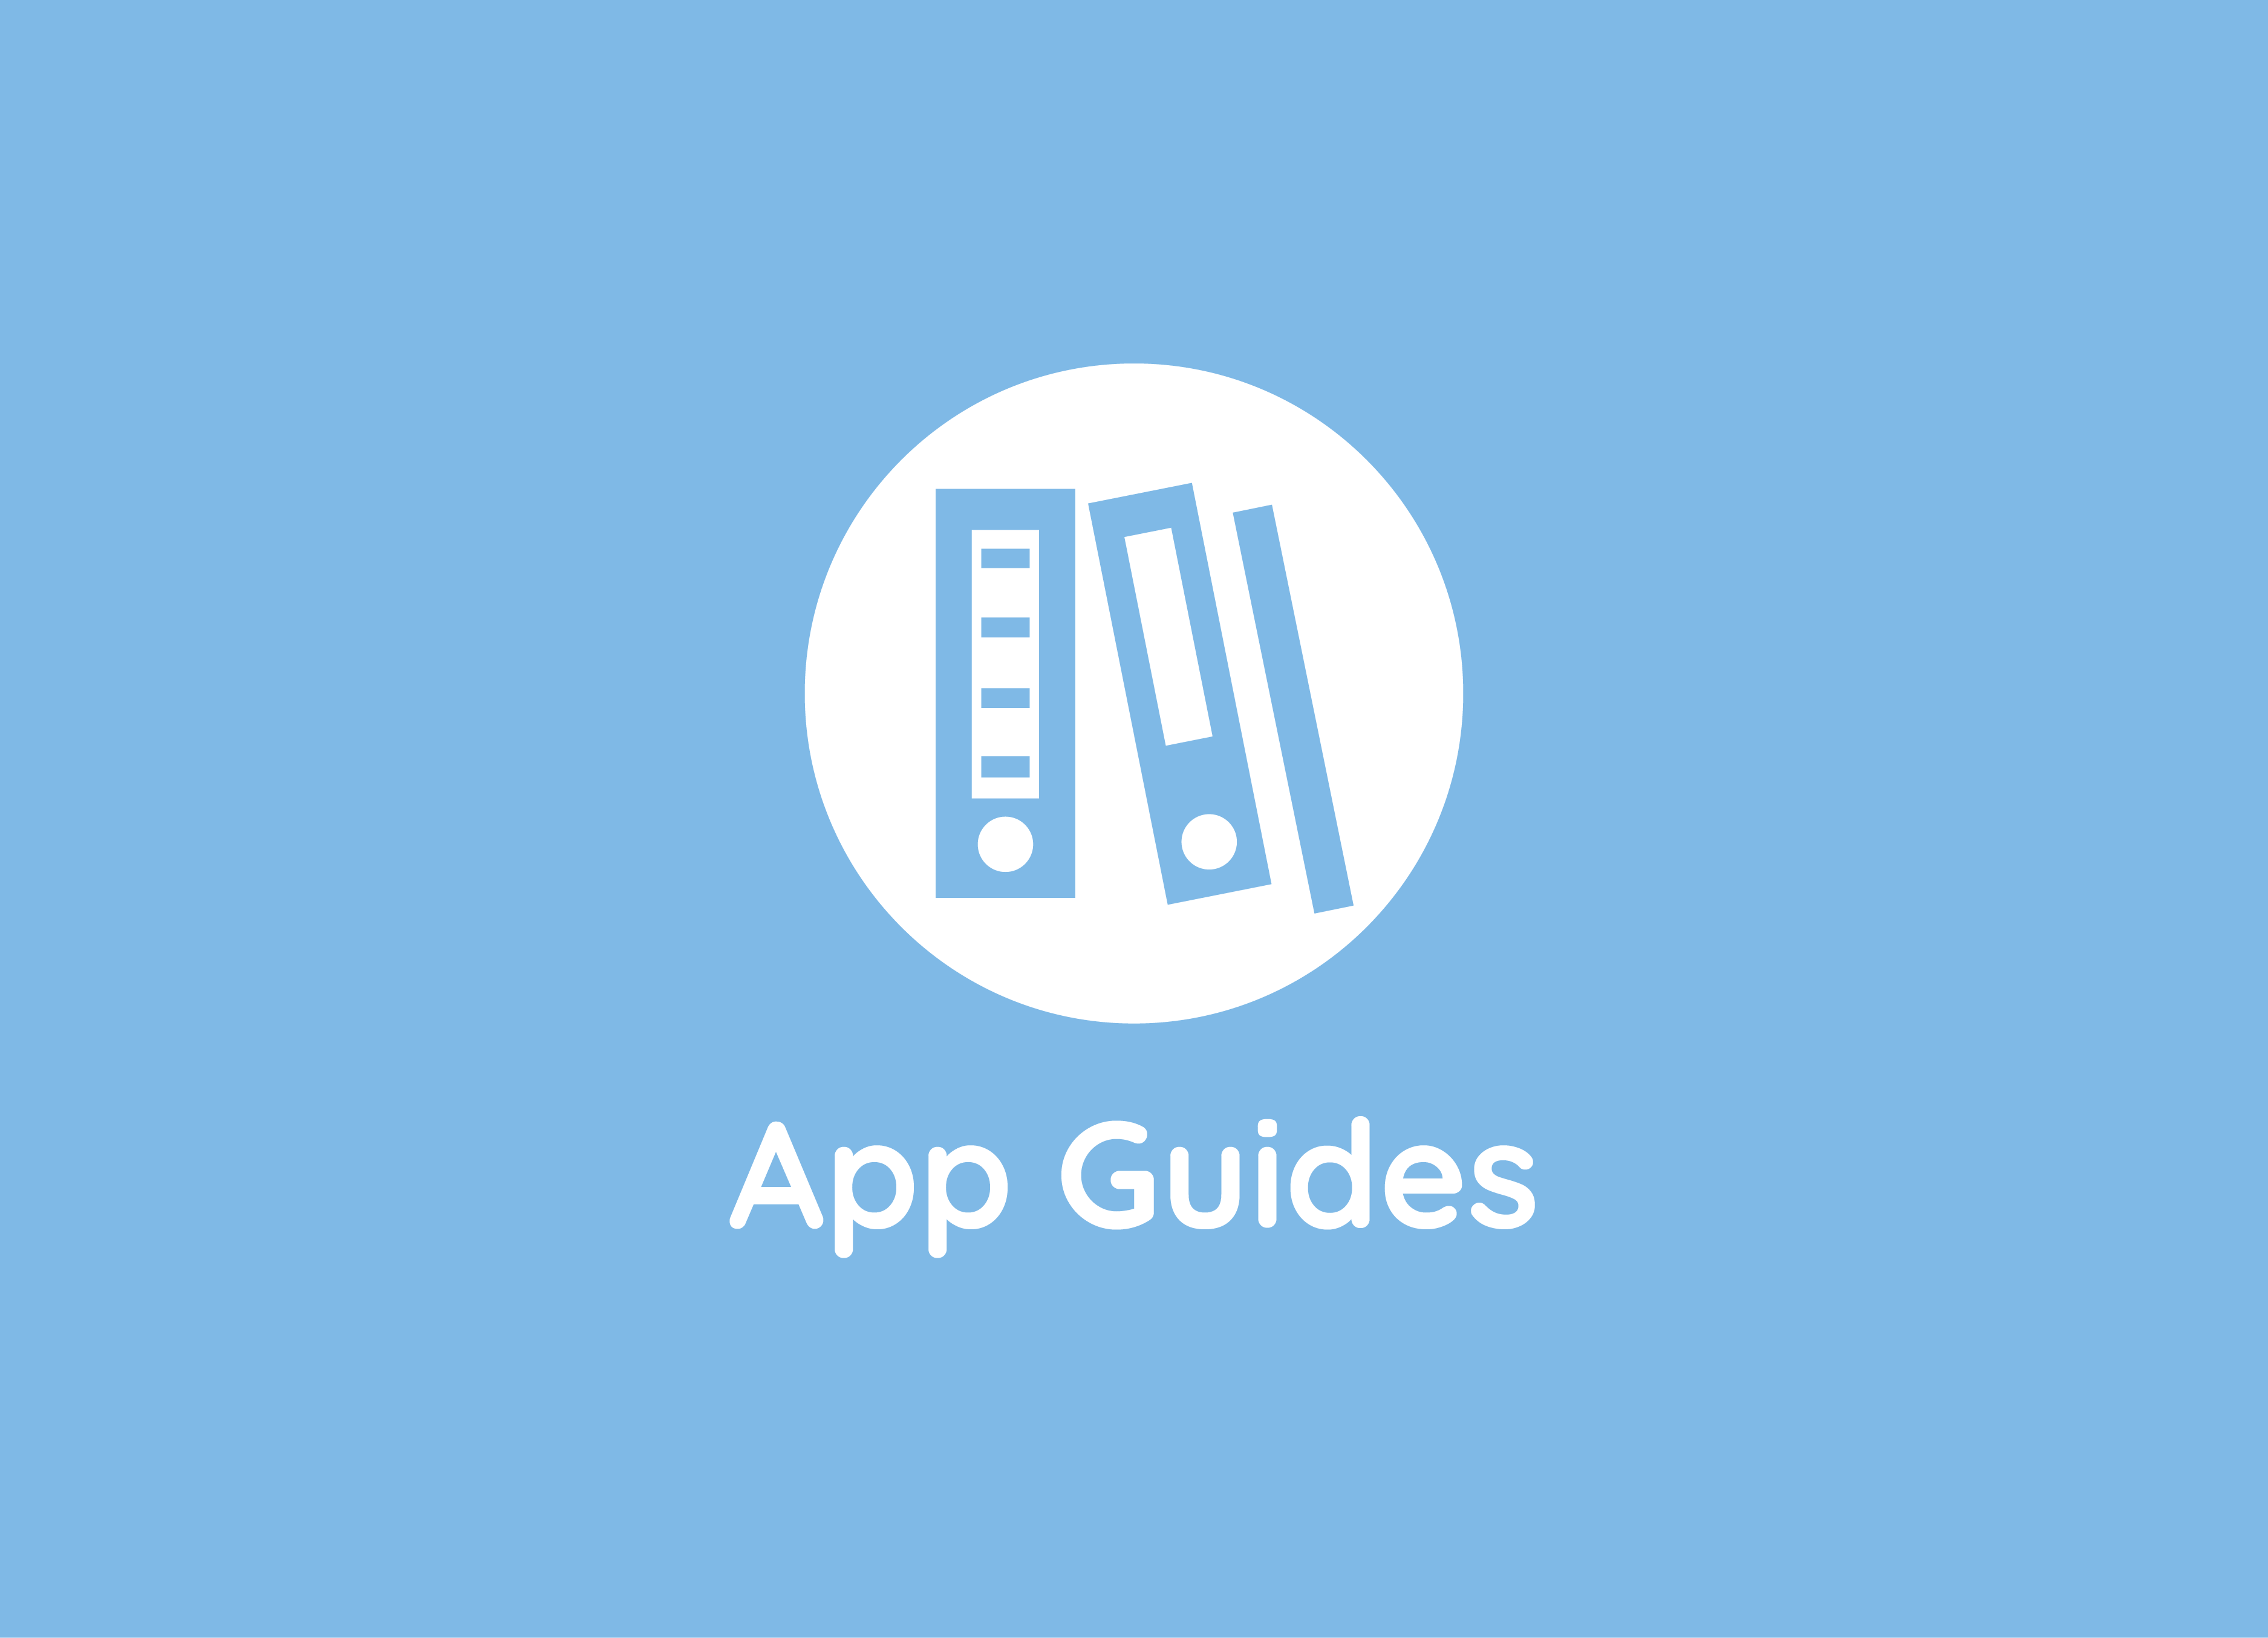 App Guides